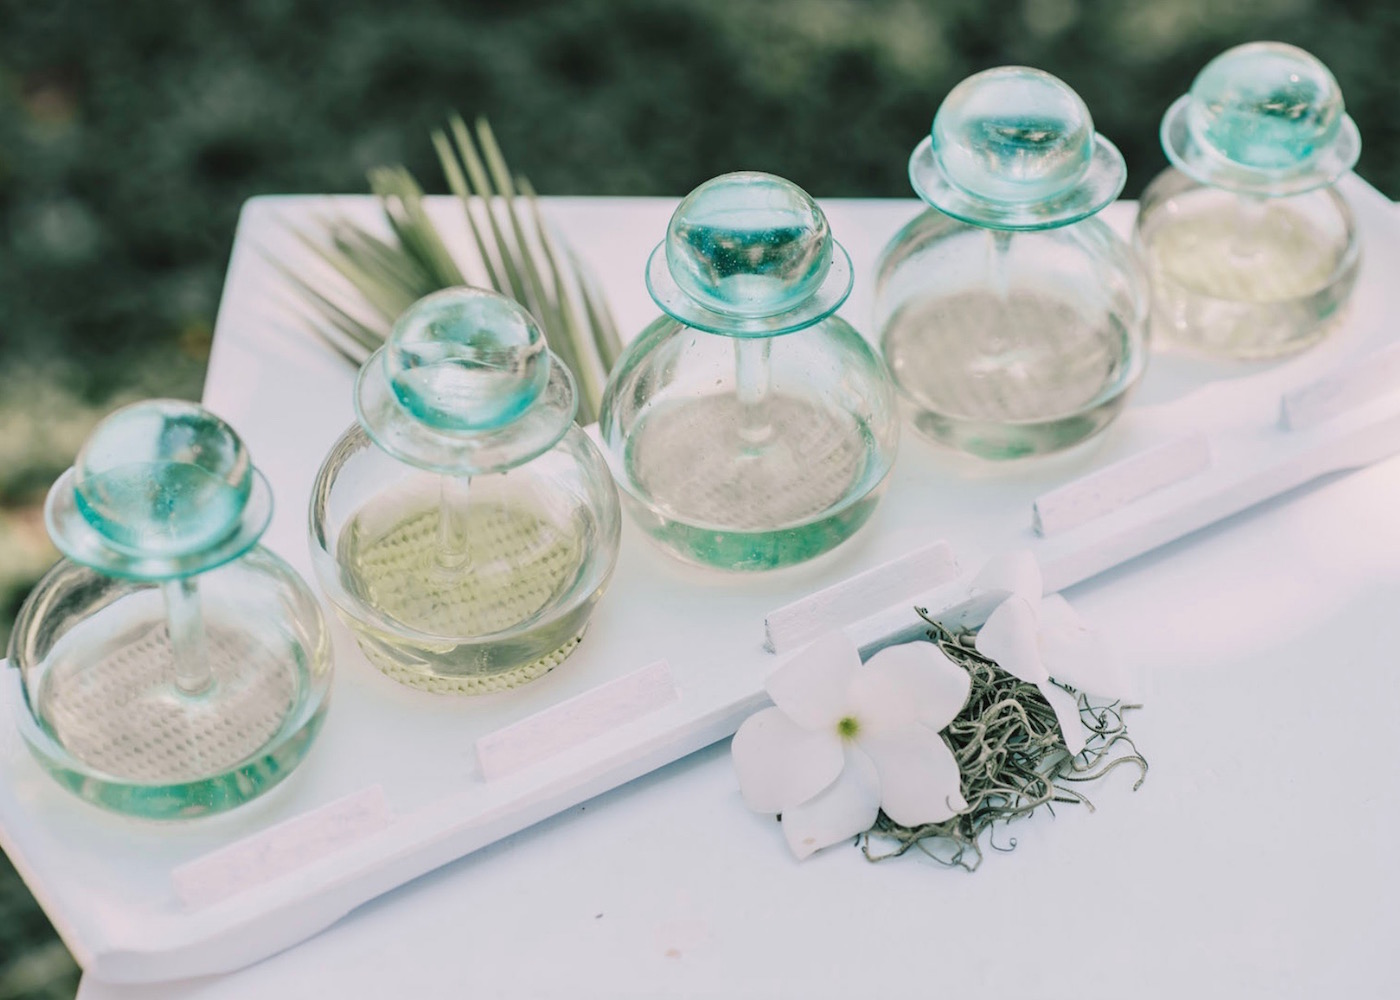 Spa oils and scents on Nusa Lembongan island in Bali, Indonesia